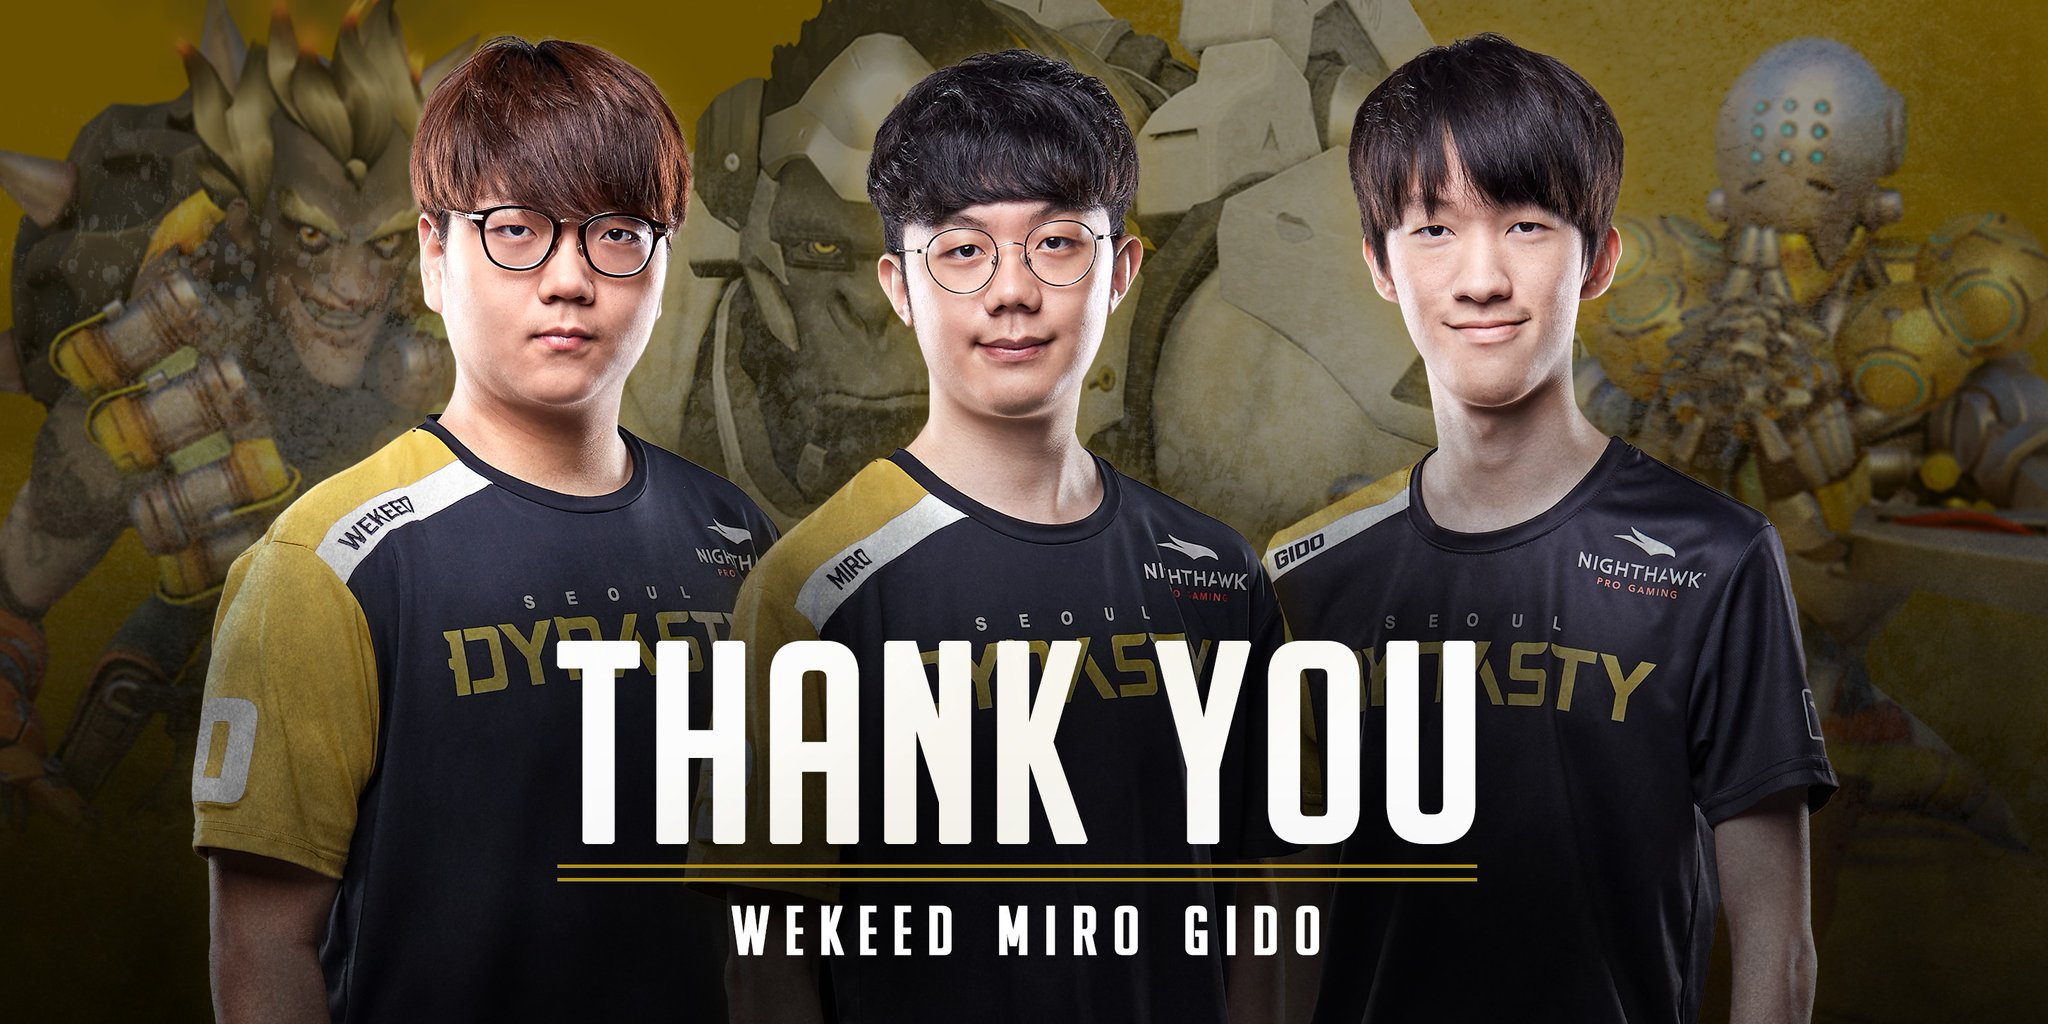 Overwatch League: Seoul Dynasty parts ways with Miro, Gido and Wekeed